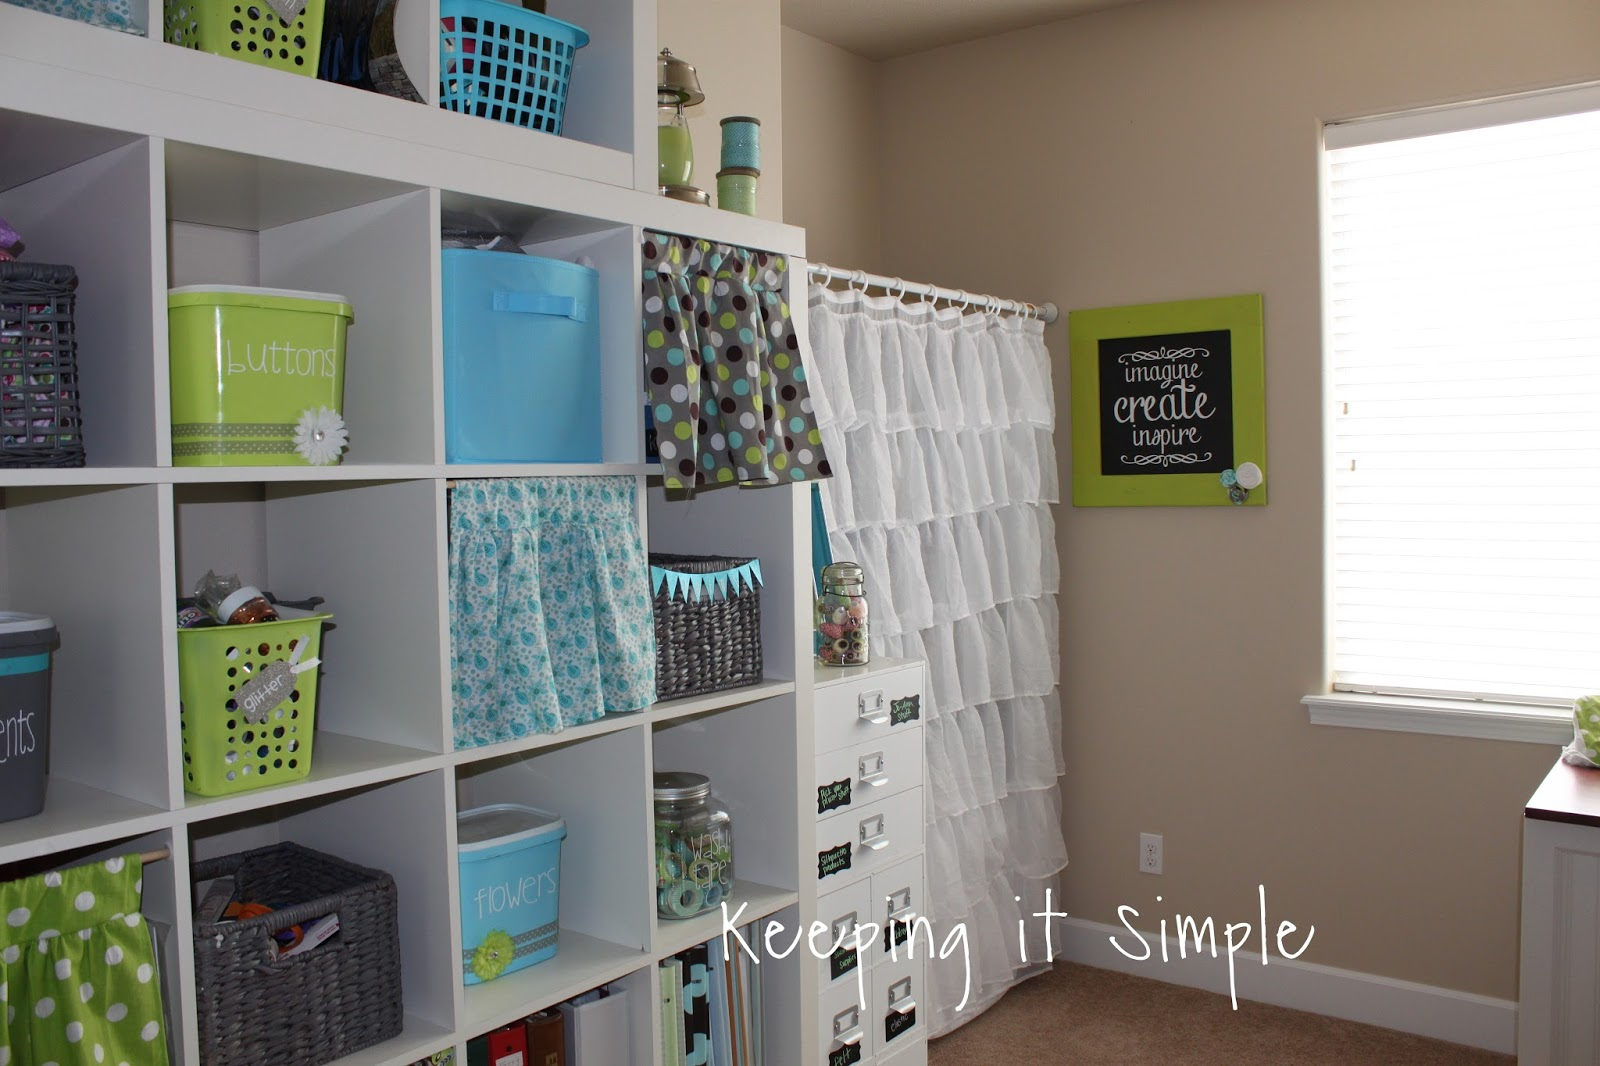 Craft Room Decor Ideas And Supplies Organization Keeping It Simple